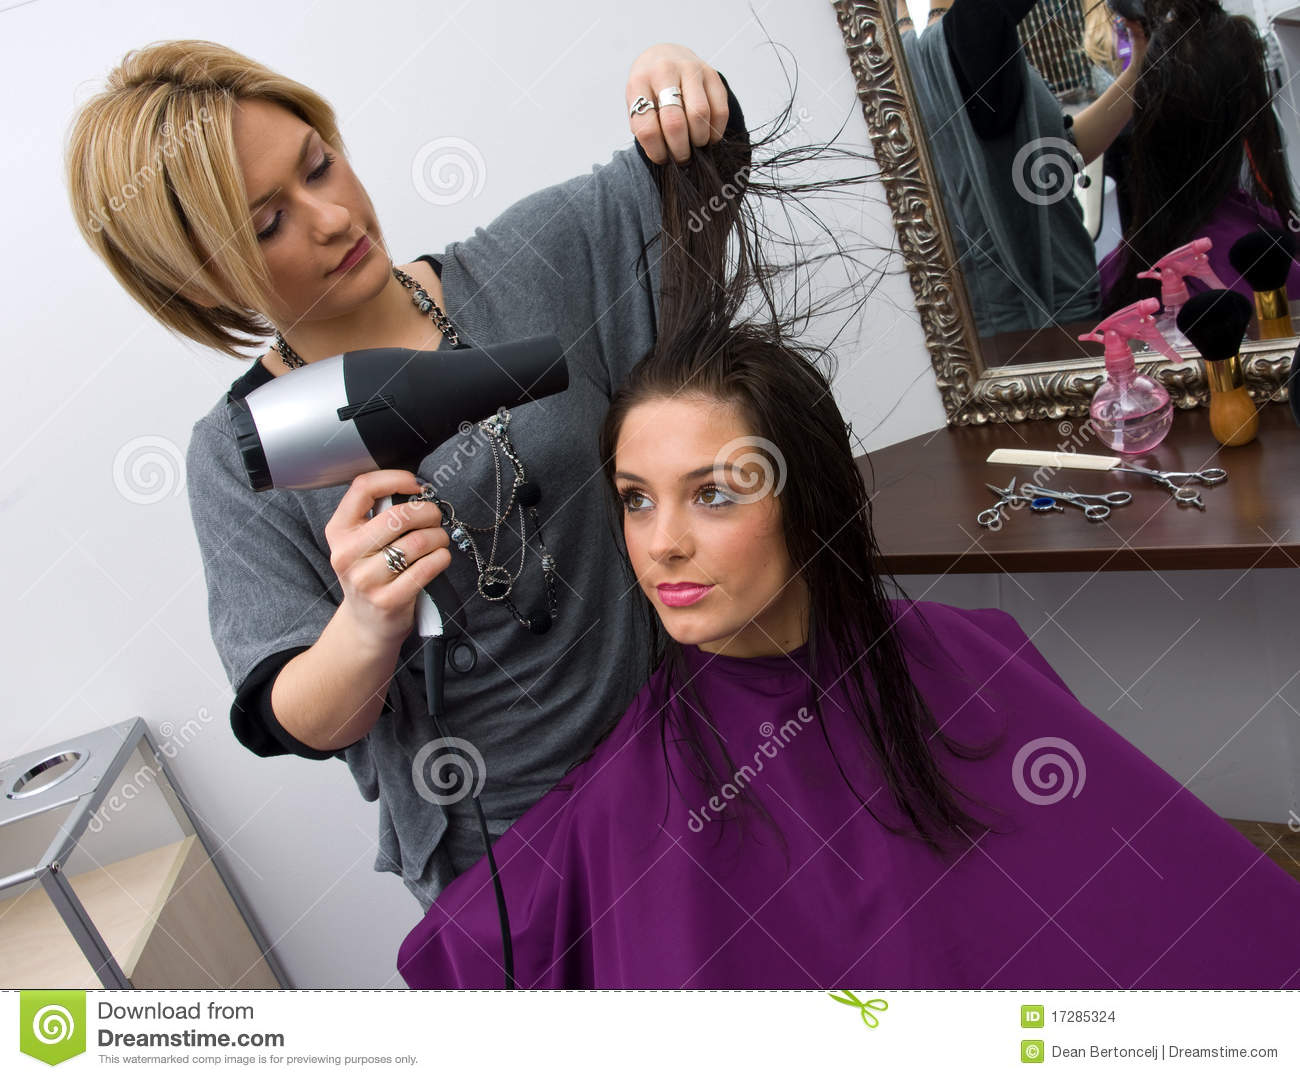 Estilista Pelo En Trabajo Brush Cut For Woman